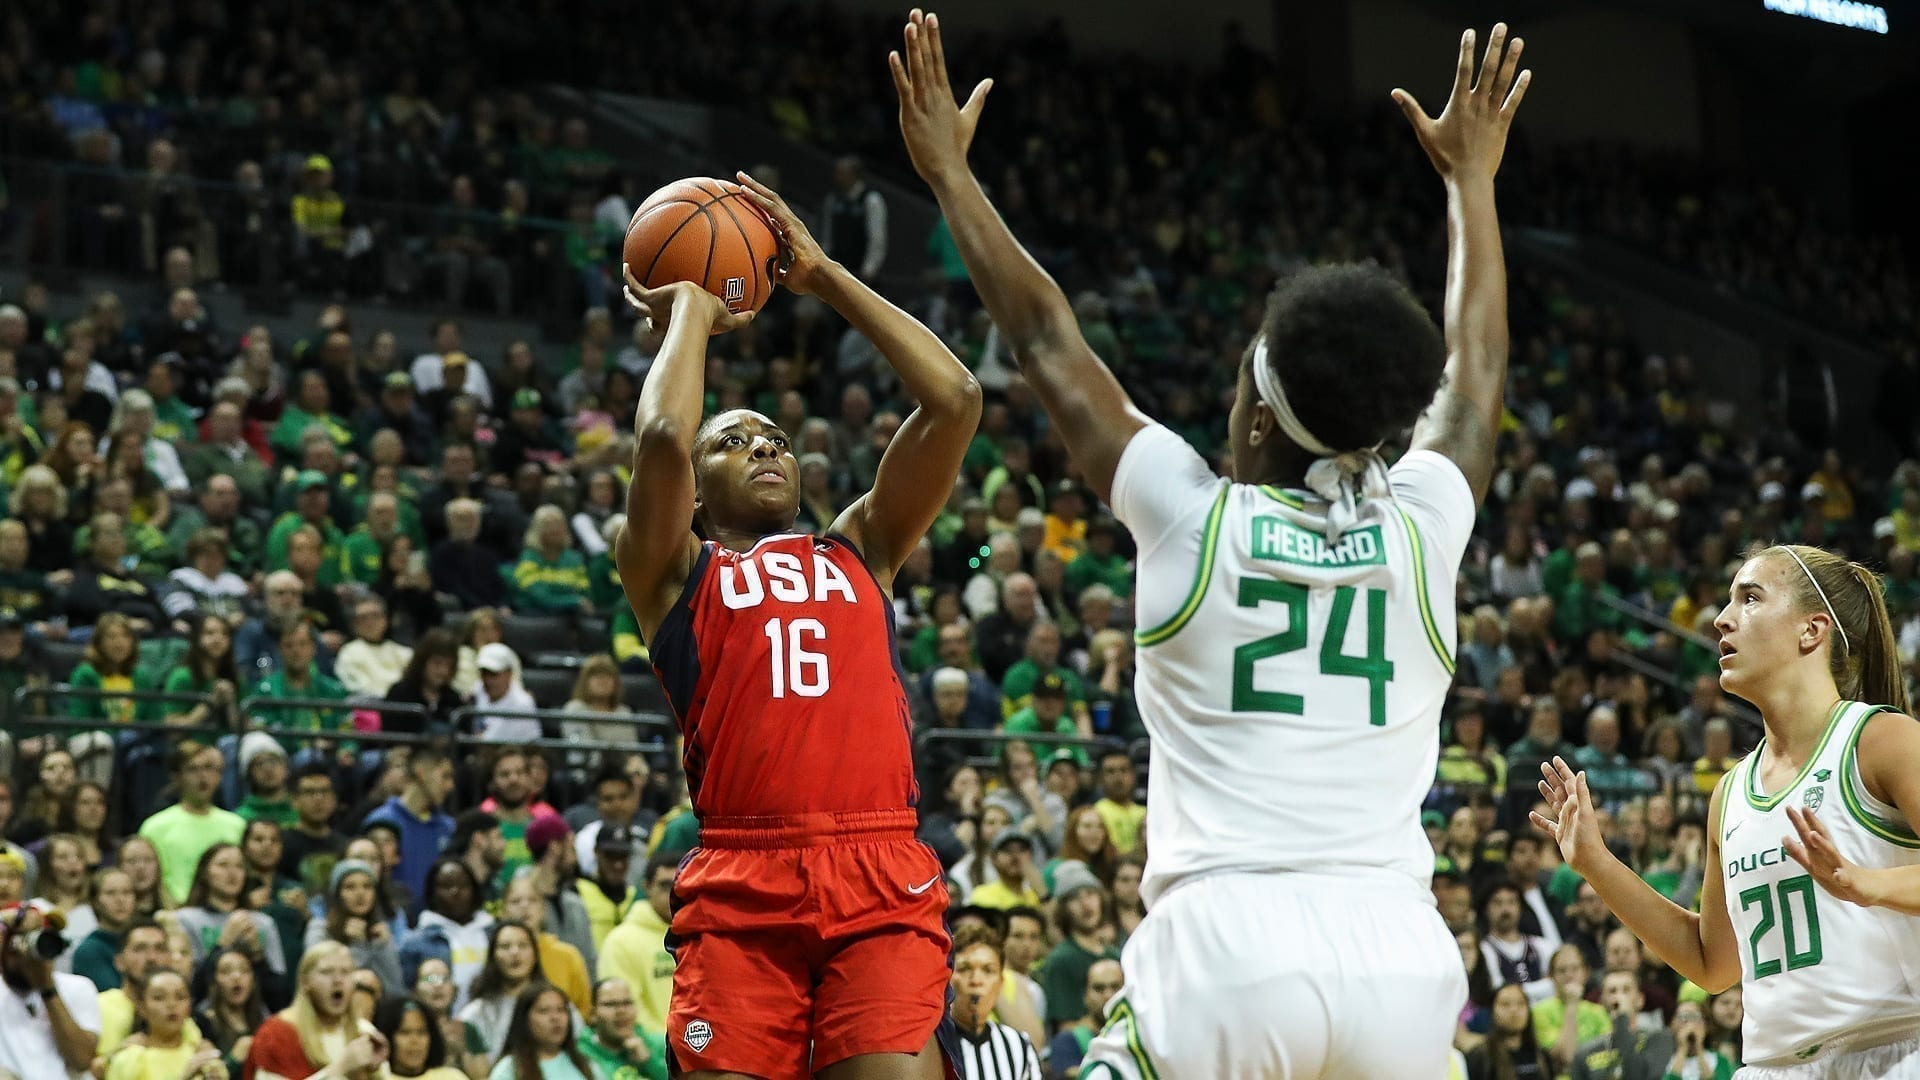 The USA Women's National Team fell to the Oregon Ducks, 93-86, on Saturday in an exhibition to help the team prepare for the 2020 Olympics in Tokyo.